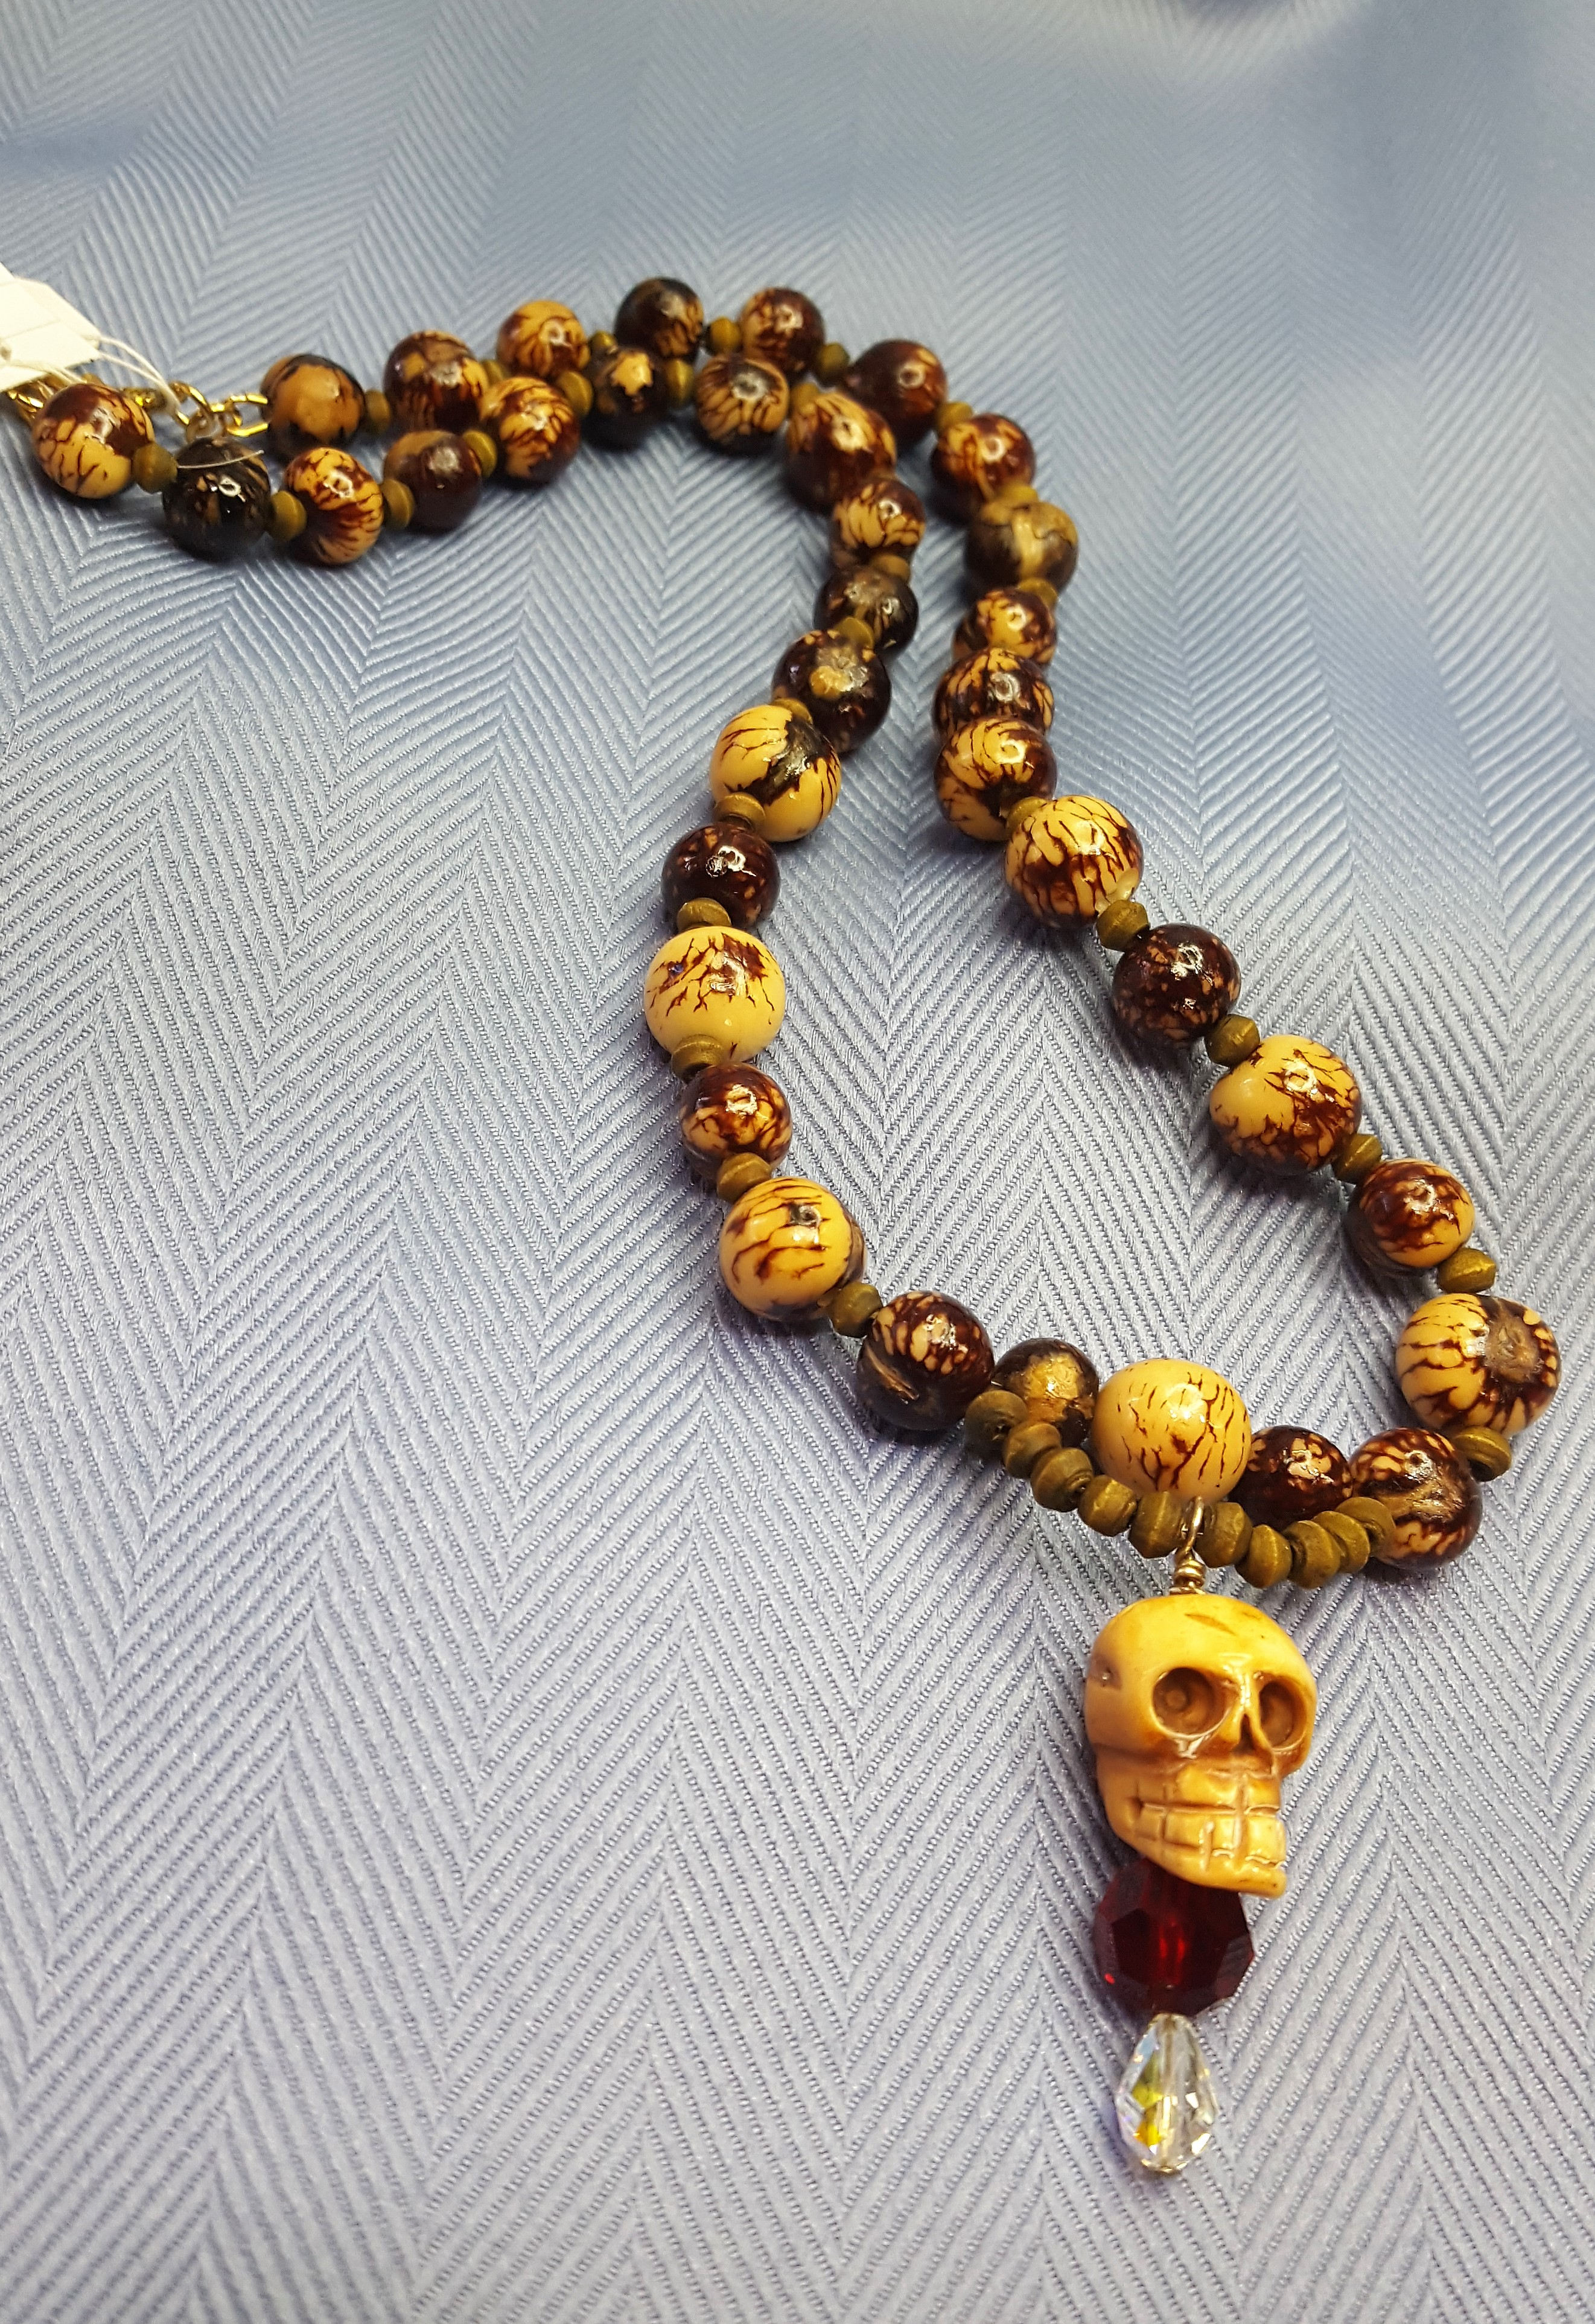 The Nutty Skull Hand Carved Bone Skull With Swarovski Crystals Acai Nuts And Beetle Nuts Drayton Jewelry